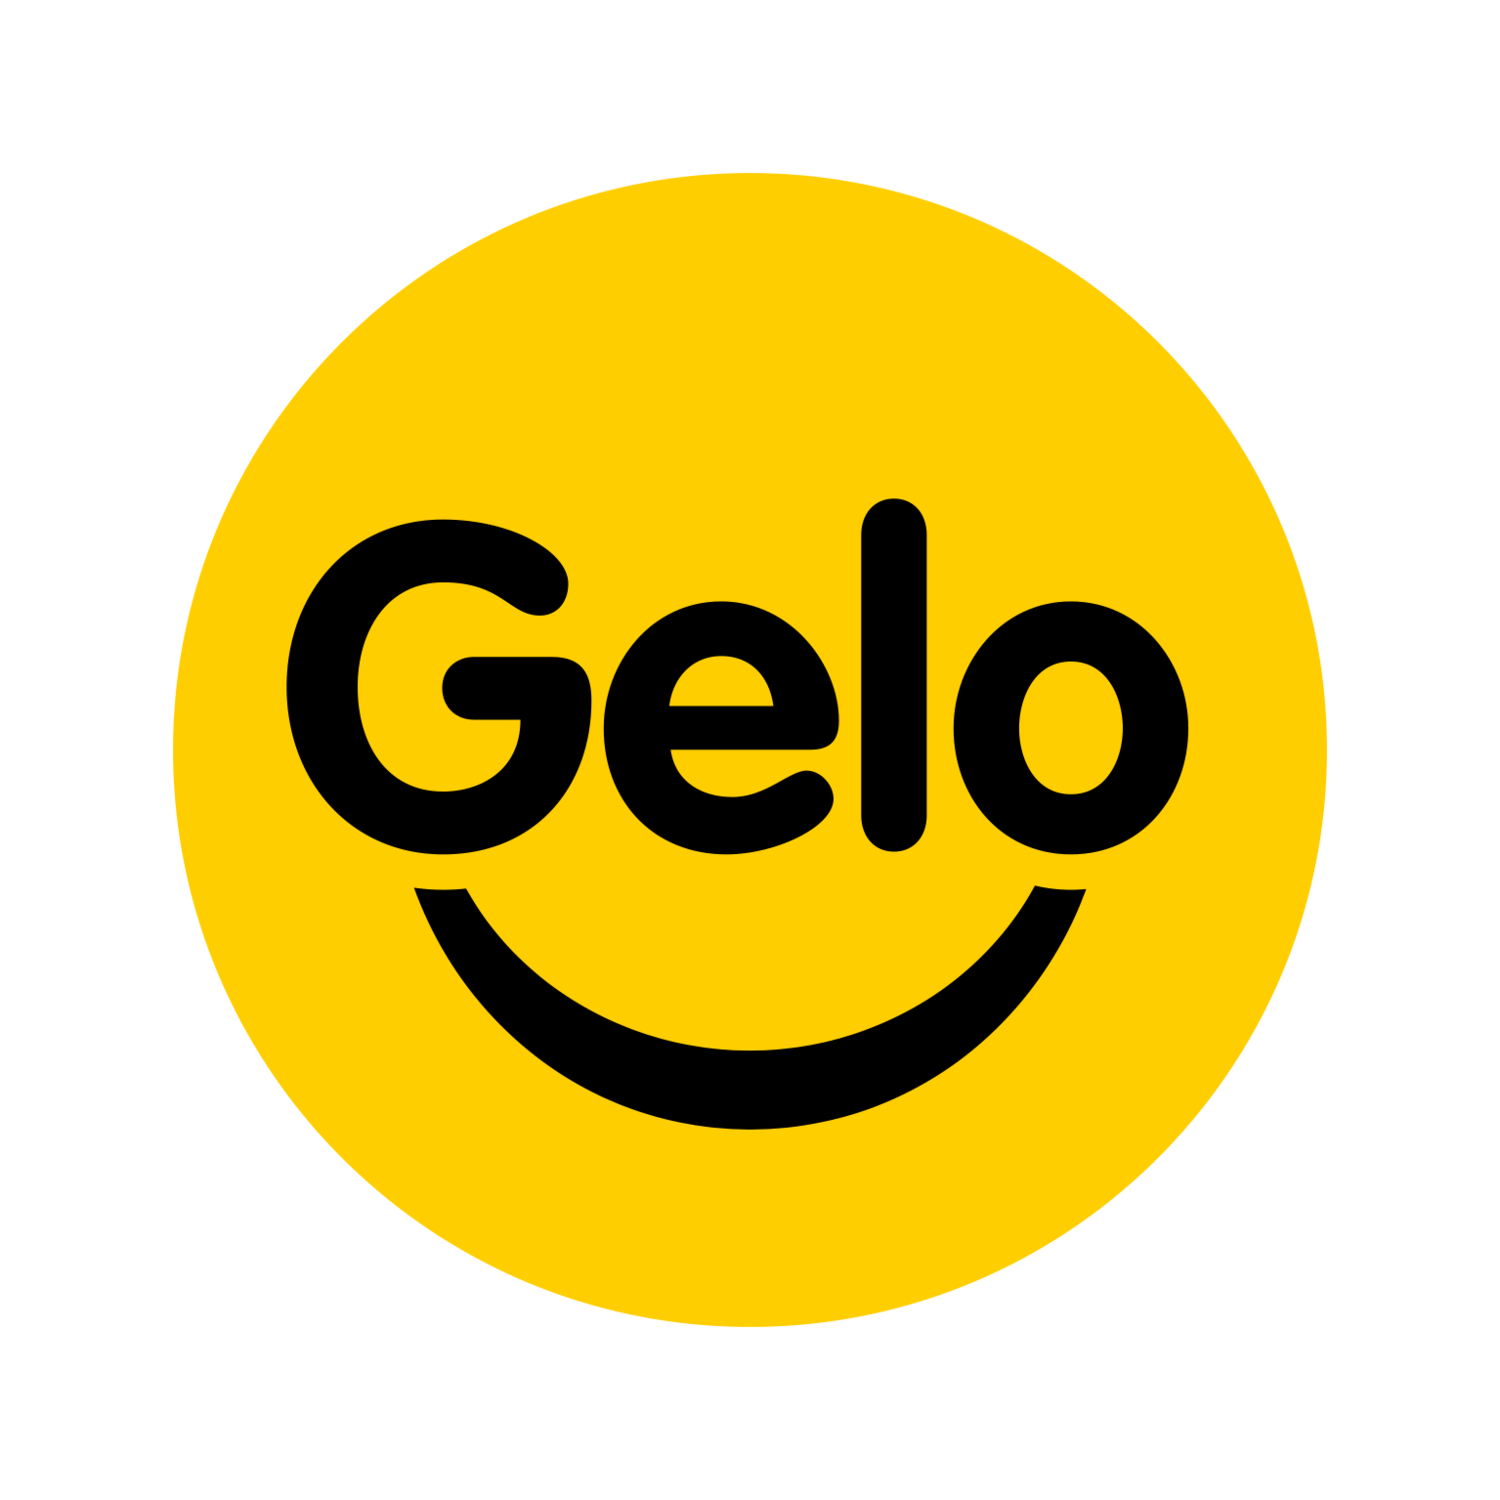 The Gelo Company